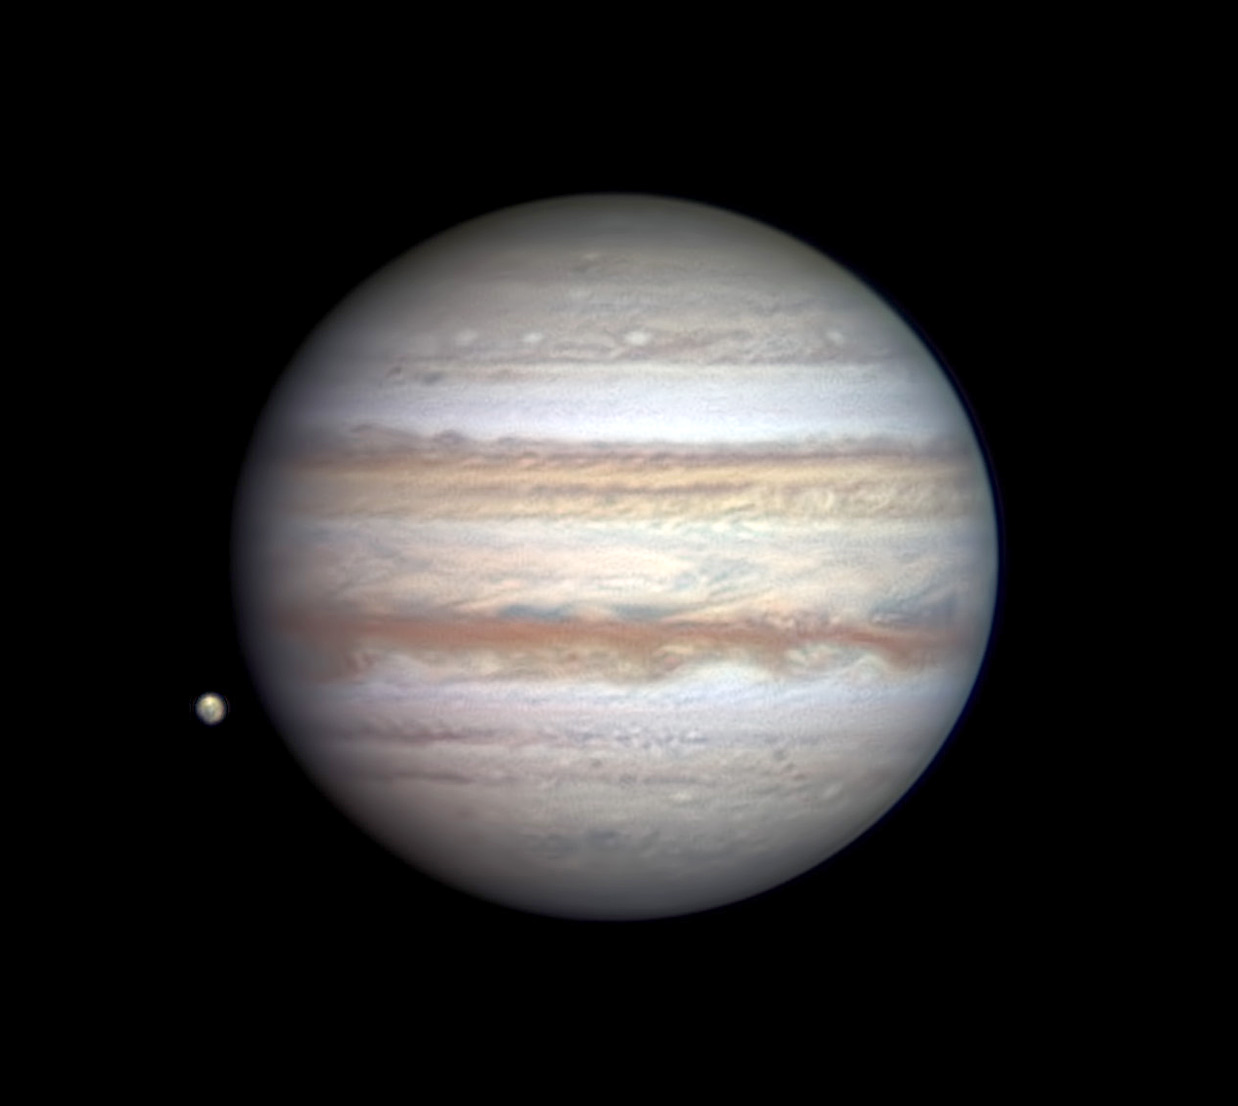 Jupiter's non-Red-Spot side, imaged by Christopher Go on April 22, 2020